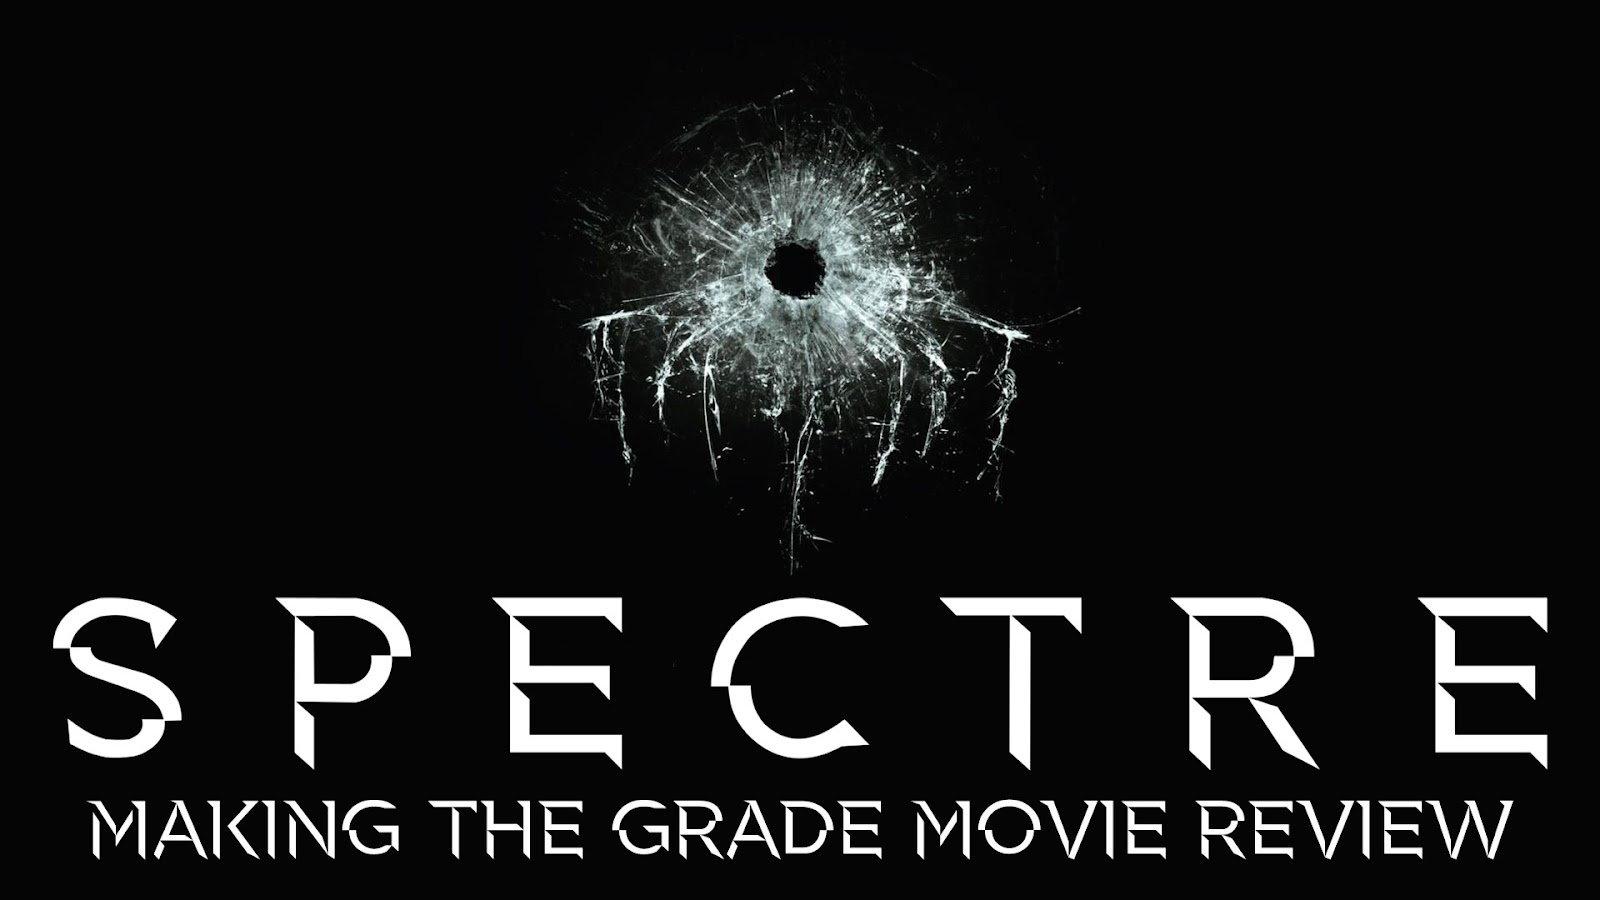 HD 007 Spectre photos screen shots poster